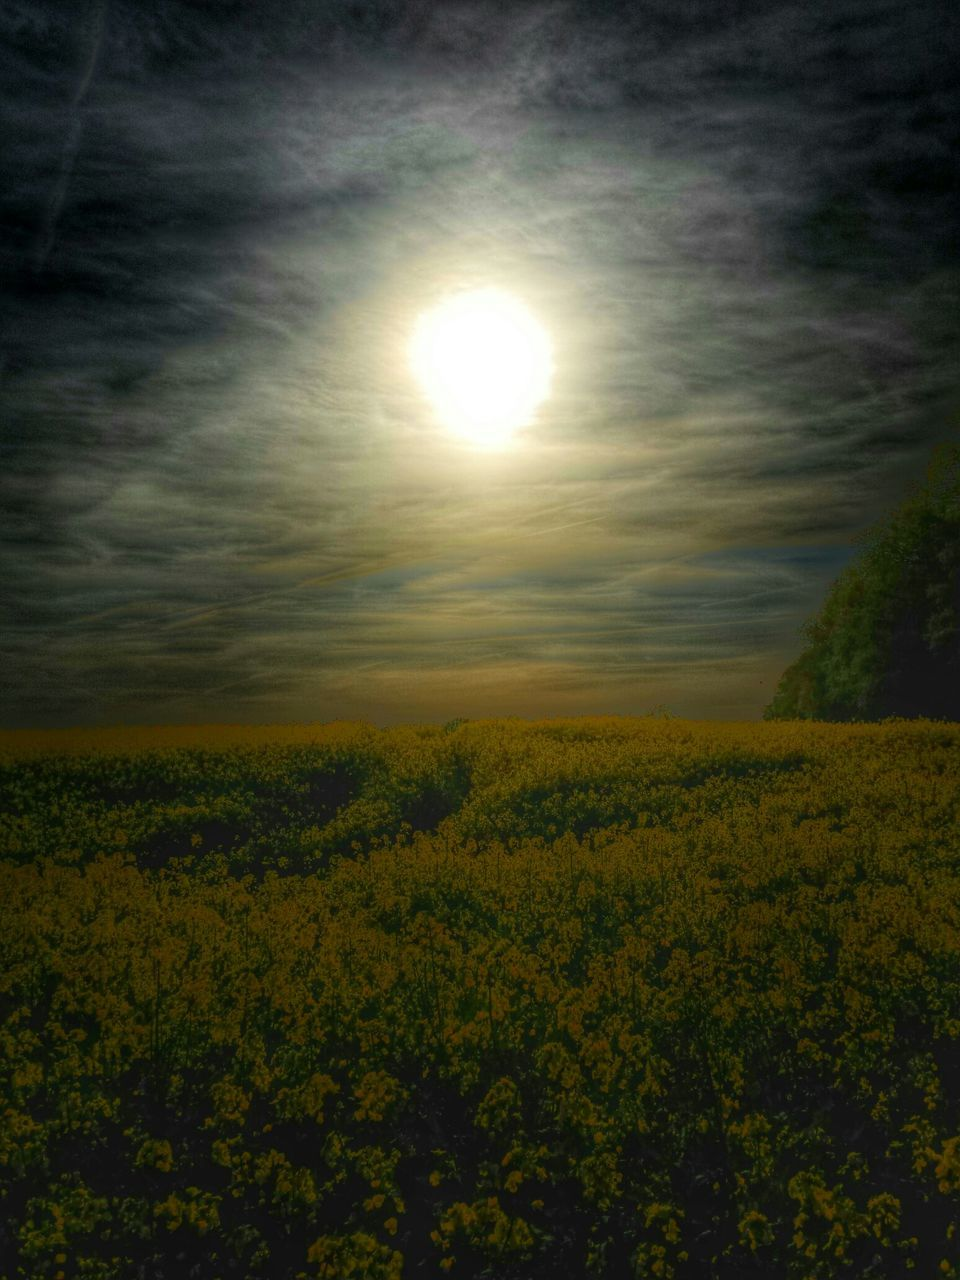 Scenic View Of Yellow Flowers Blooming On Field Against Sky